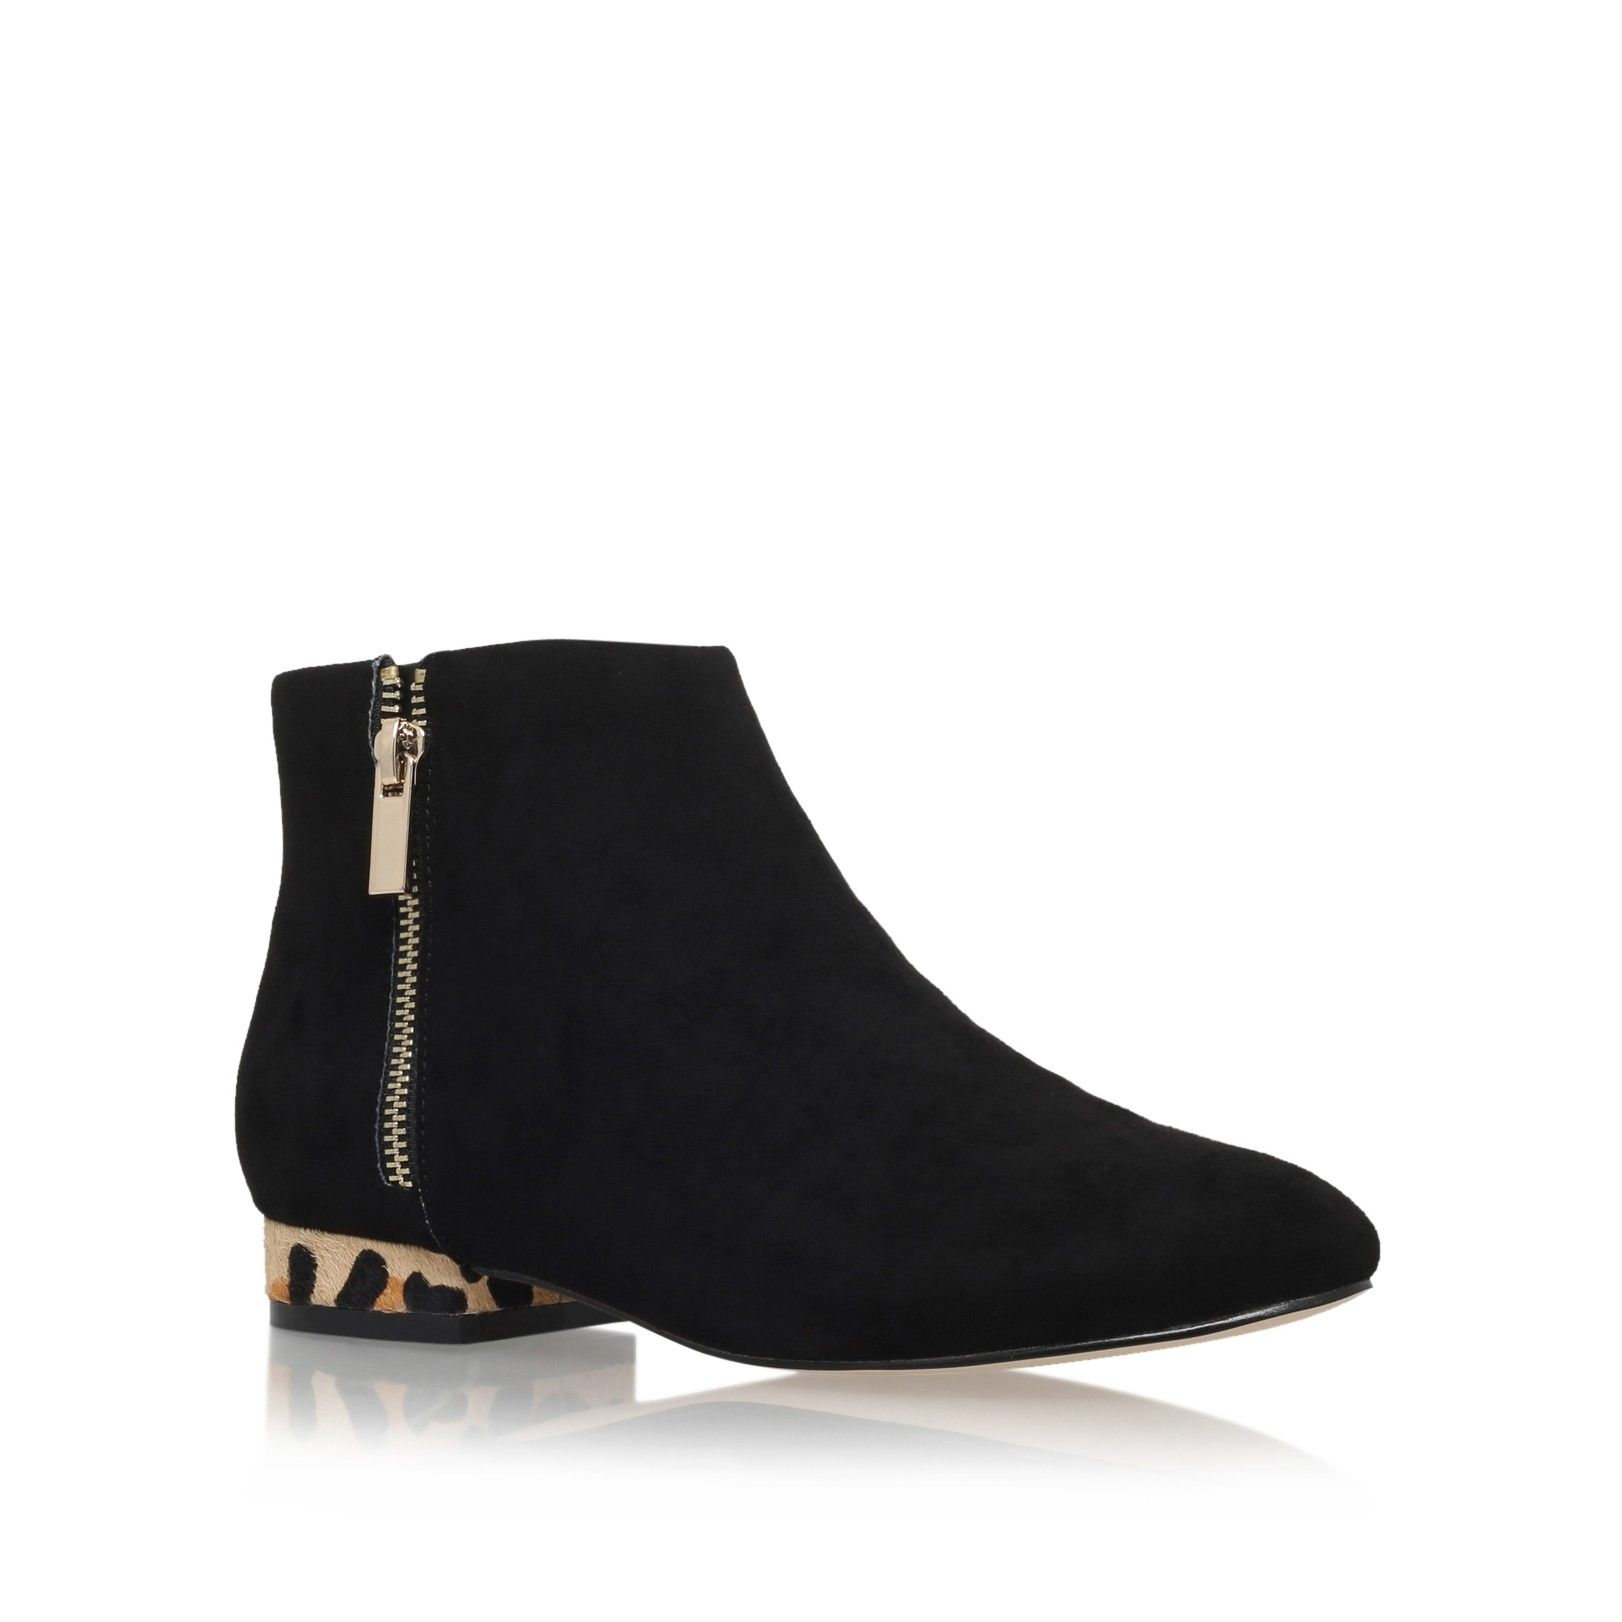 SOHO Black Low Heel Ankle Boots by Miss KG | Kurt Geiger | Kurt ...